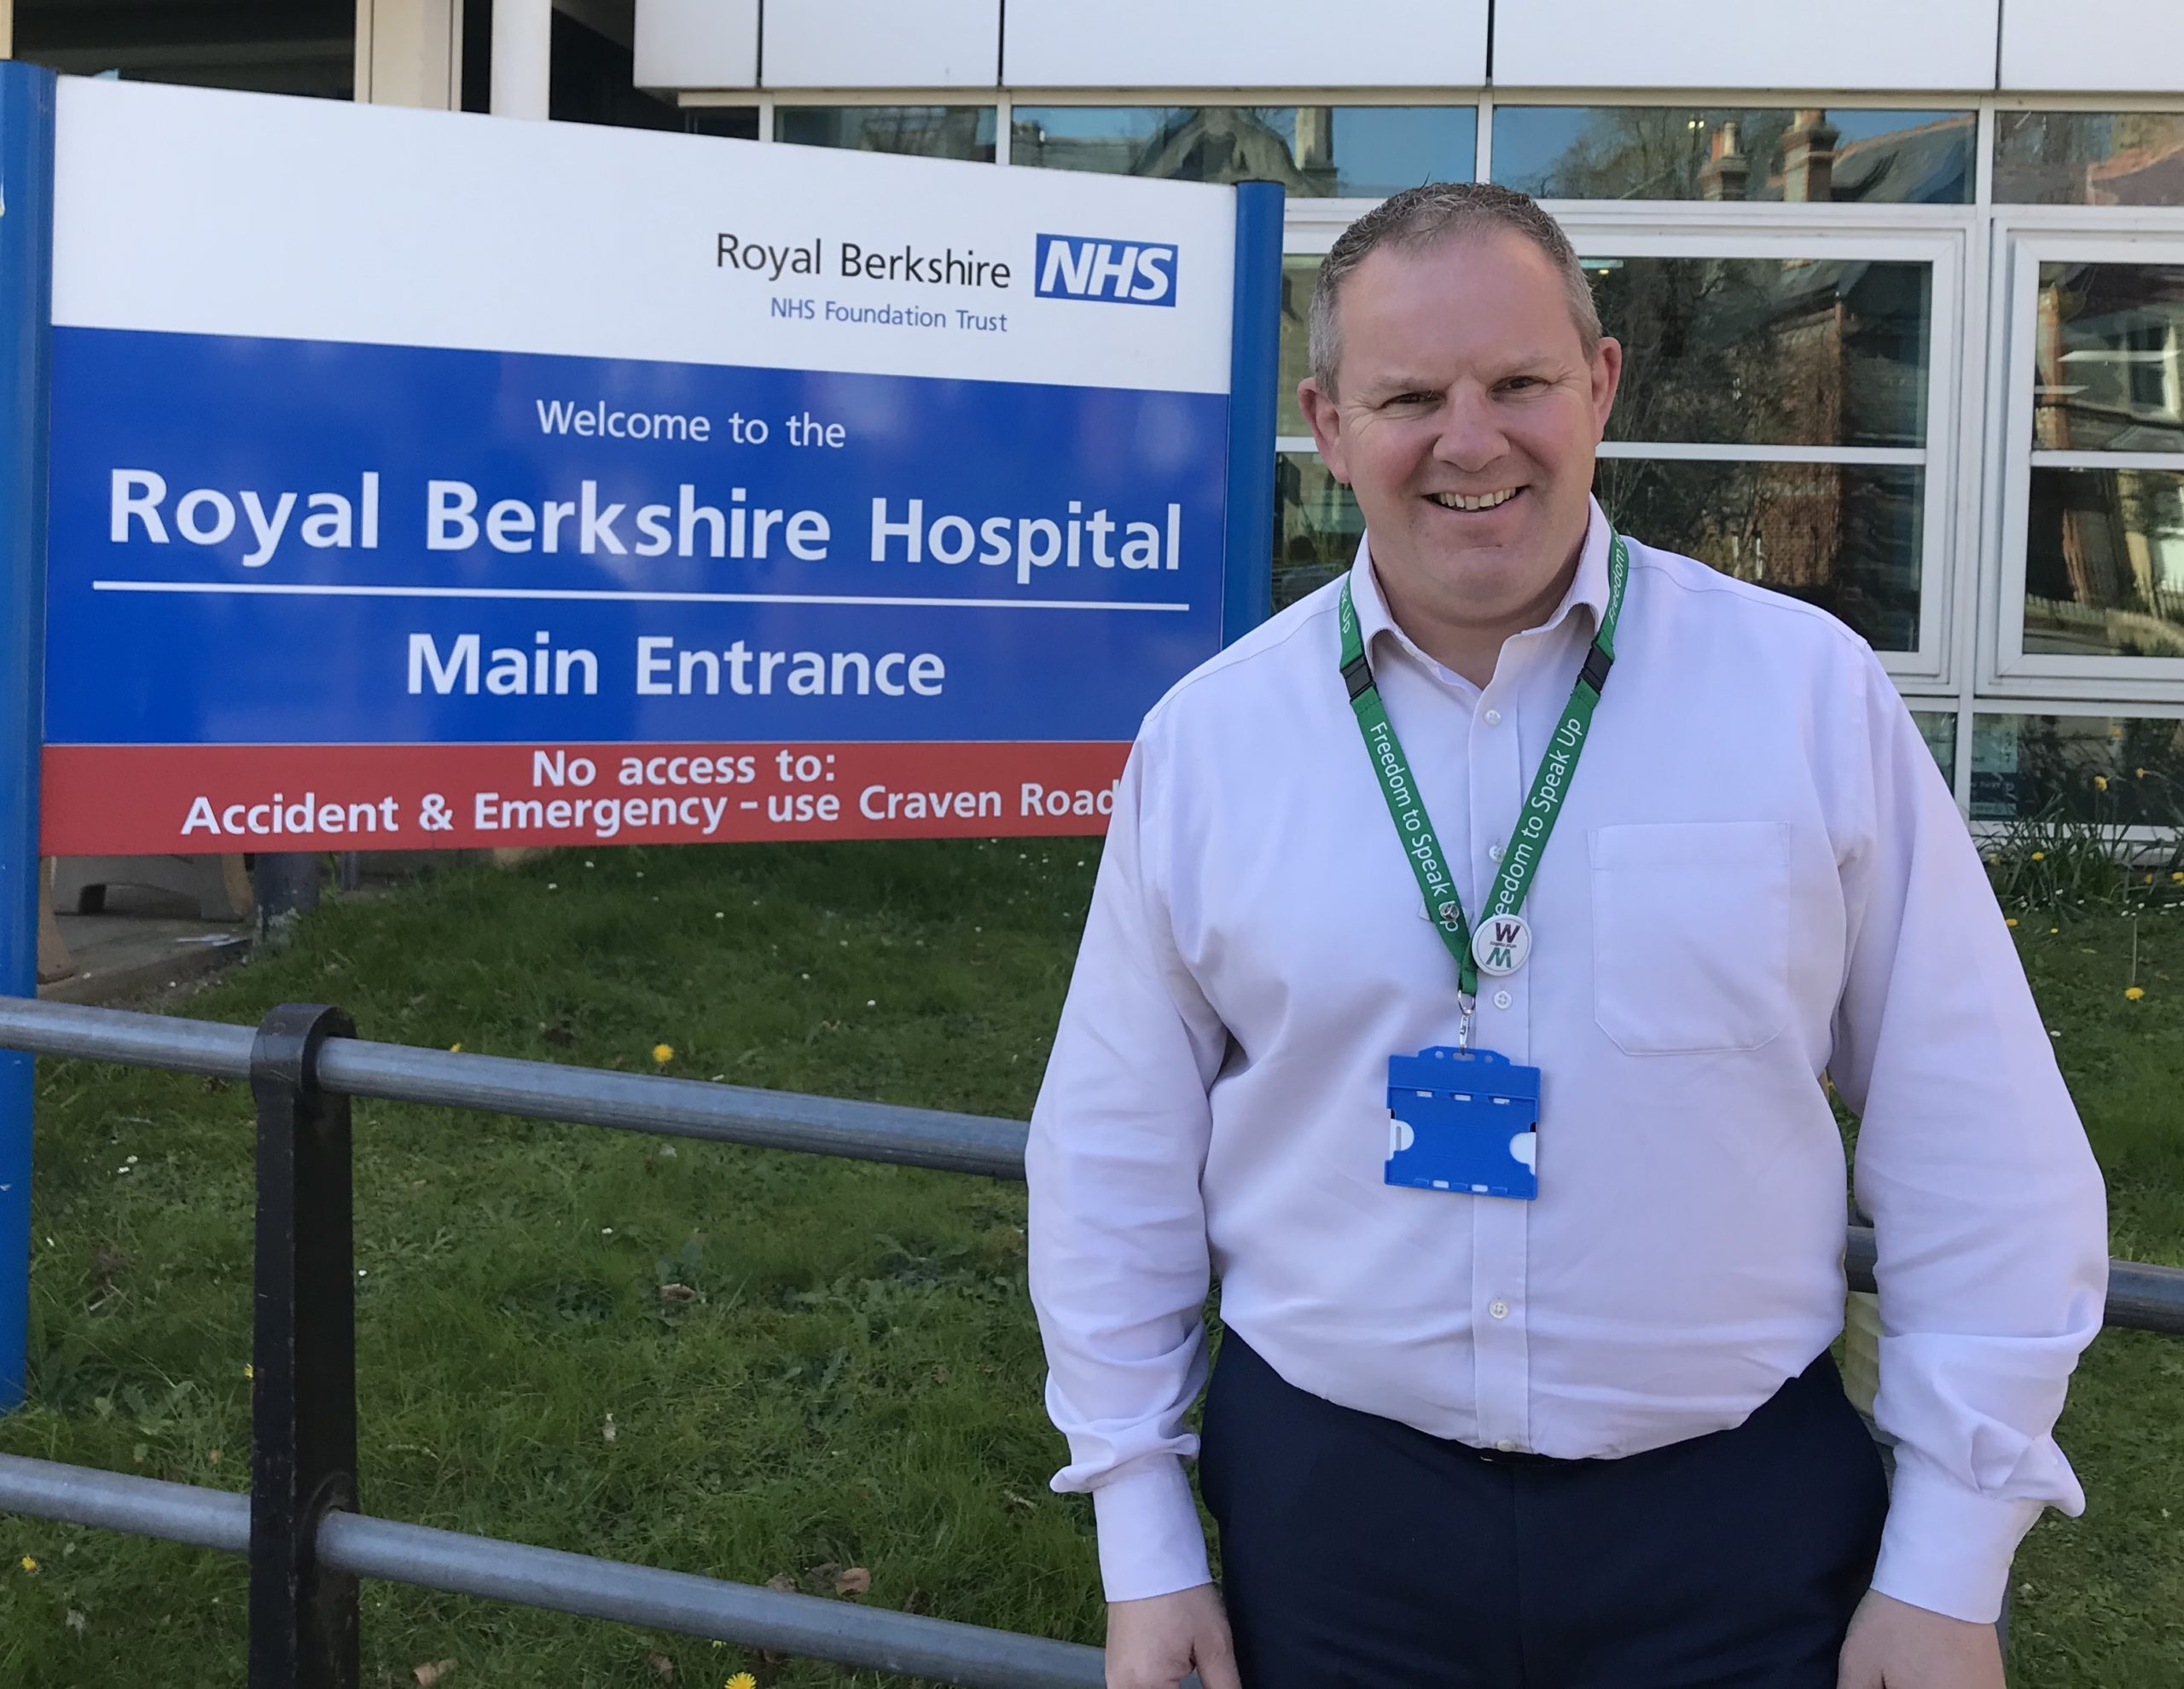 Picture of Steve McManus Chief Executive of Royal Berkshire Hospital outside main entrance of the hospital